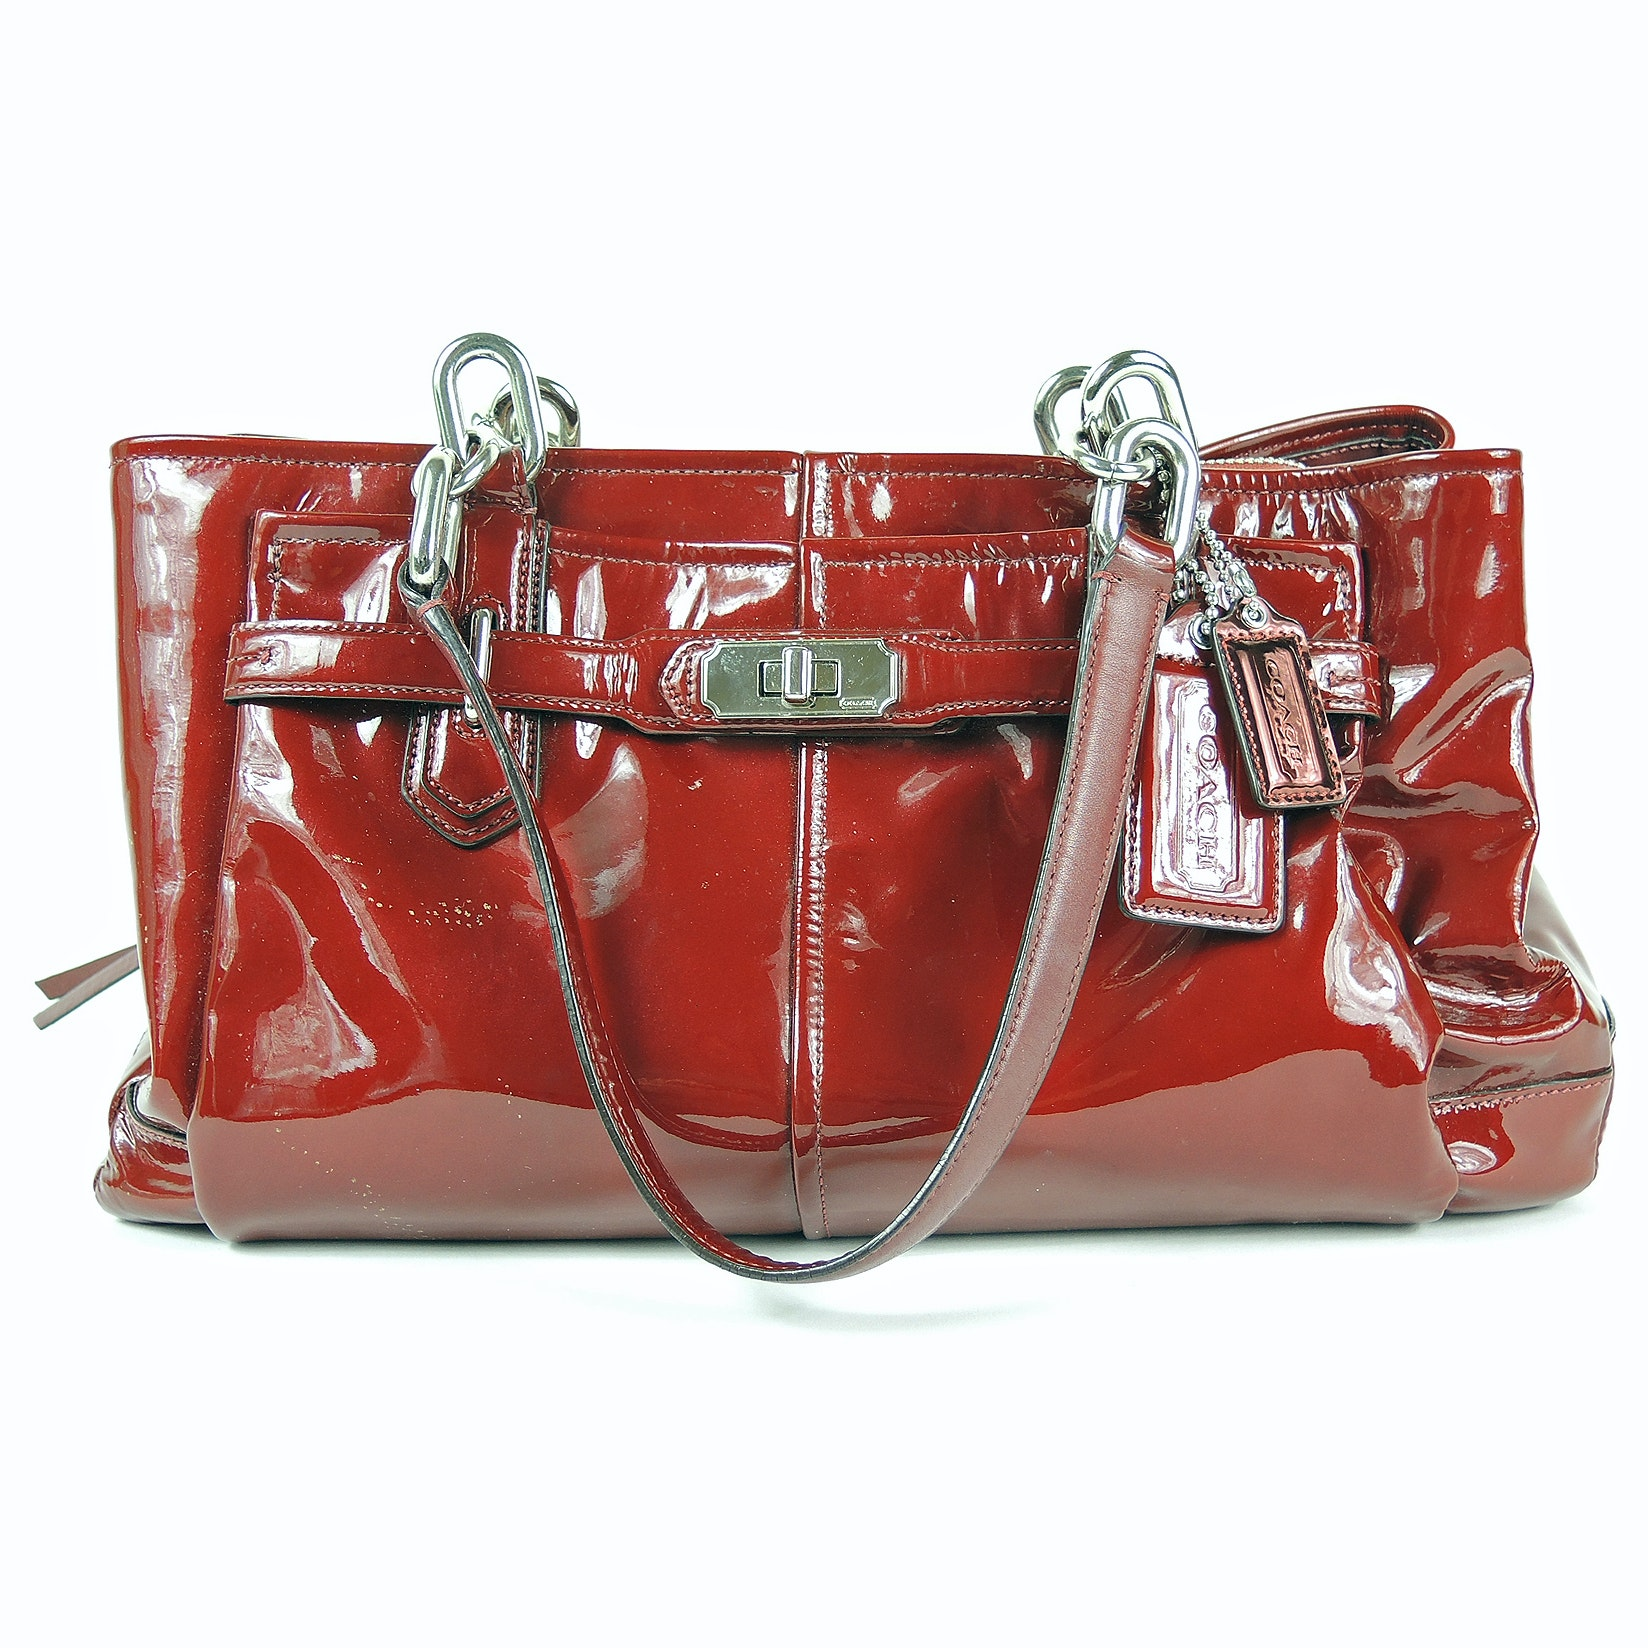 Coach Chelsea Jayden East West Red Patent Leather Carryall Satchel